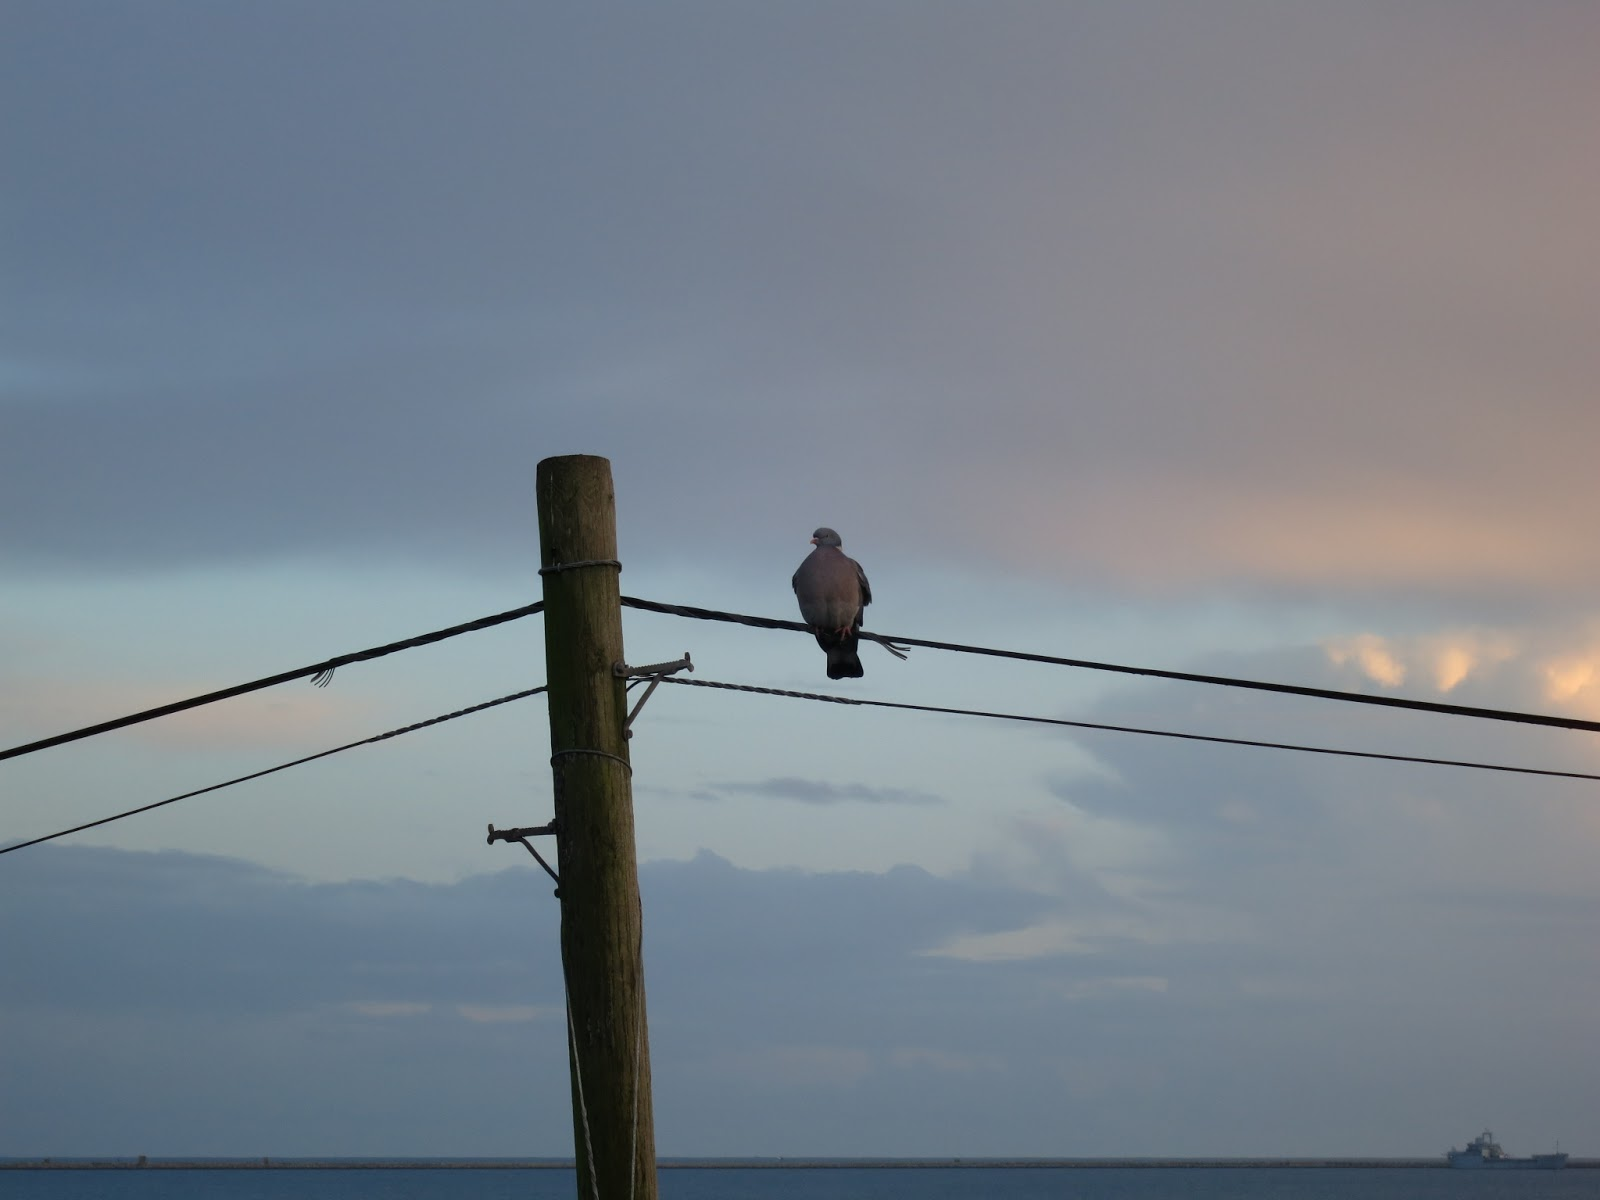 Collared Dove on a telegraph pole with sea and sky behind.